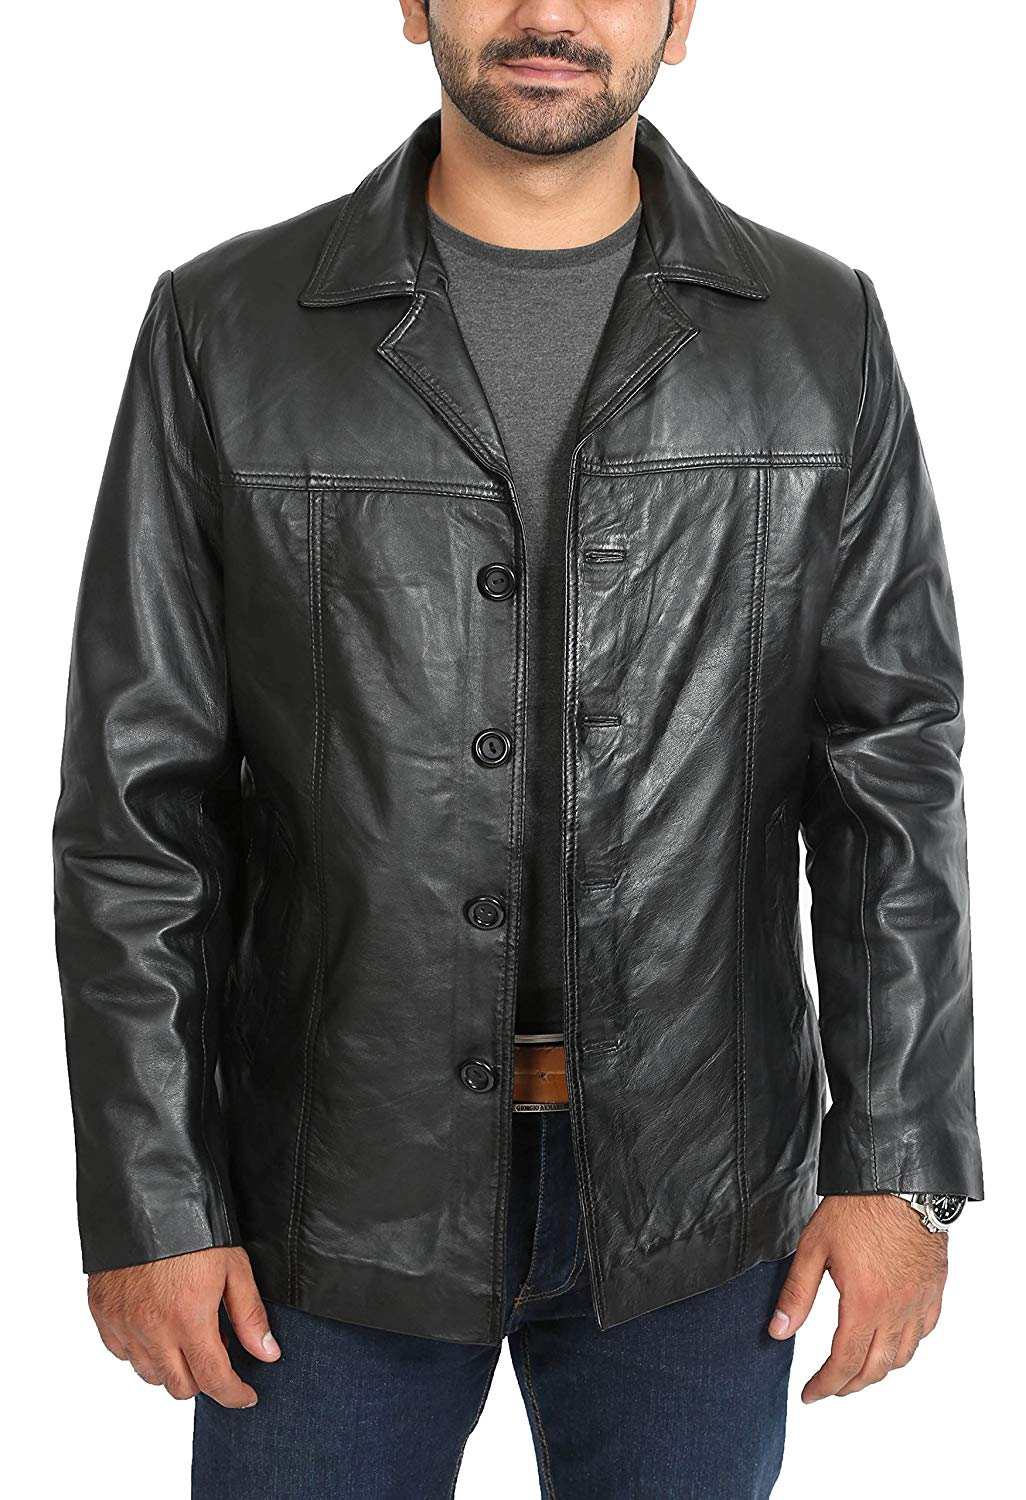 ba6b49e2f0484 Get Quotations · Mens Single Breasted Safari Reefer Button Box Leather  Jacket Thrill Black